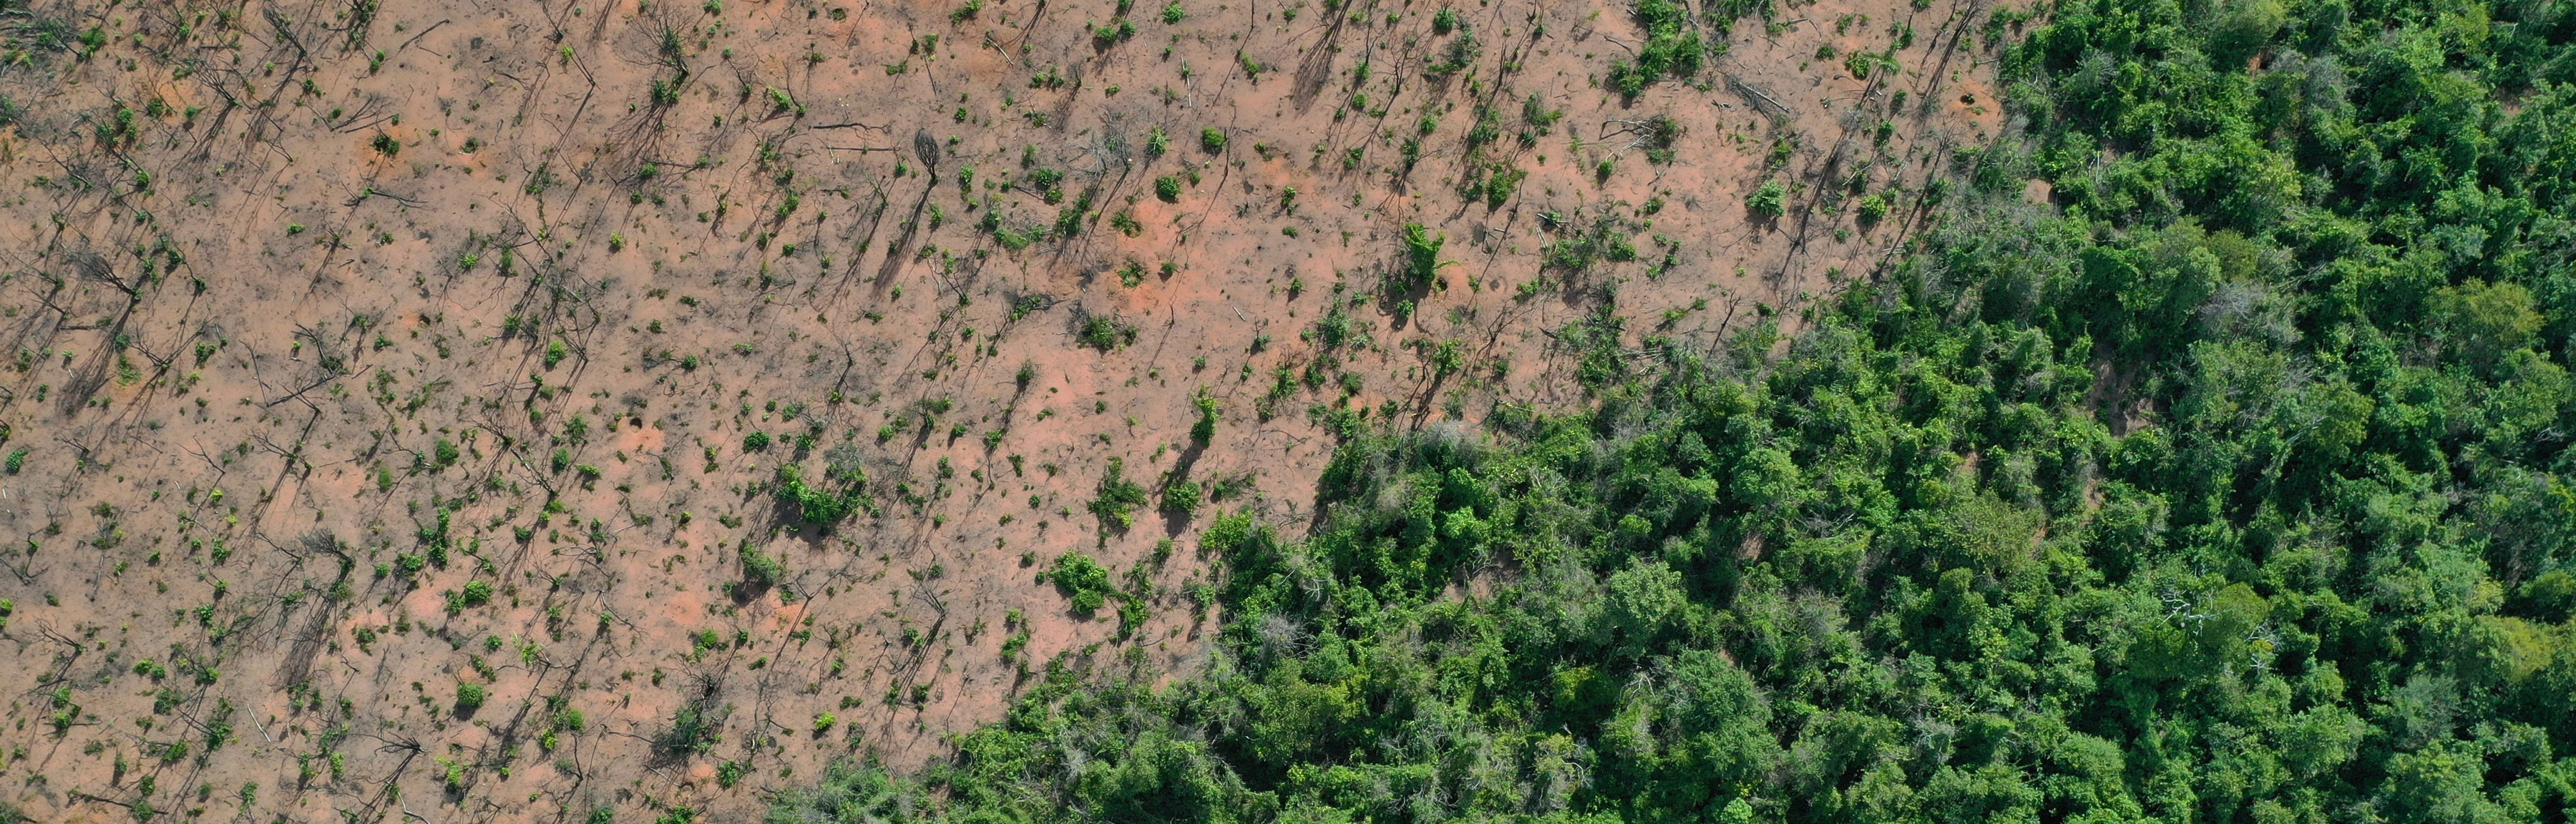 Drone photo showing large area of cleared forest